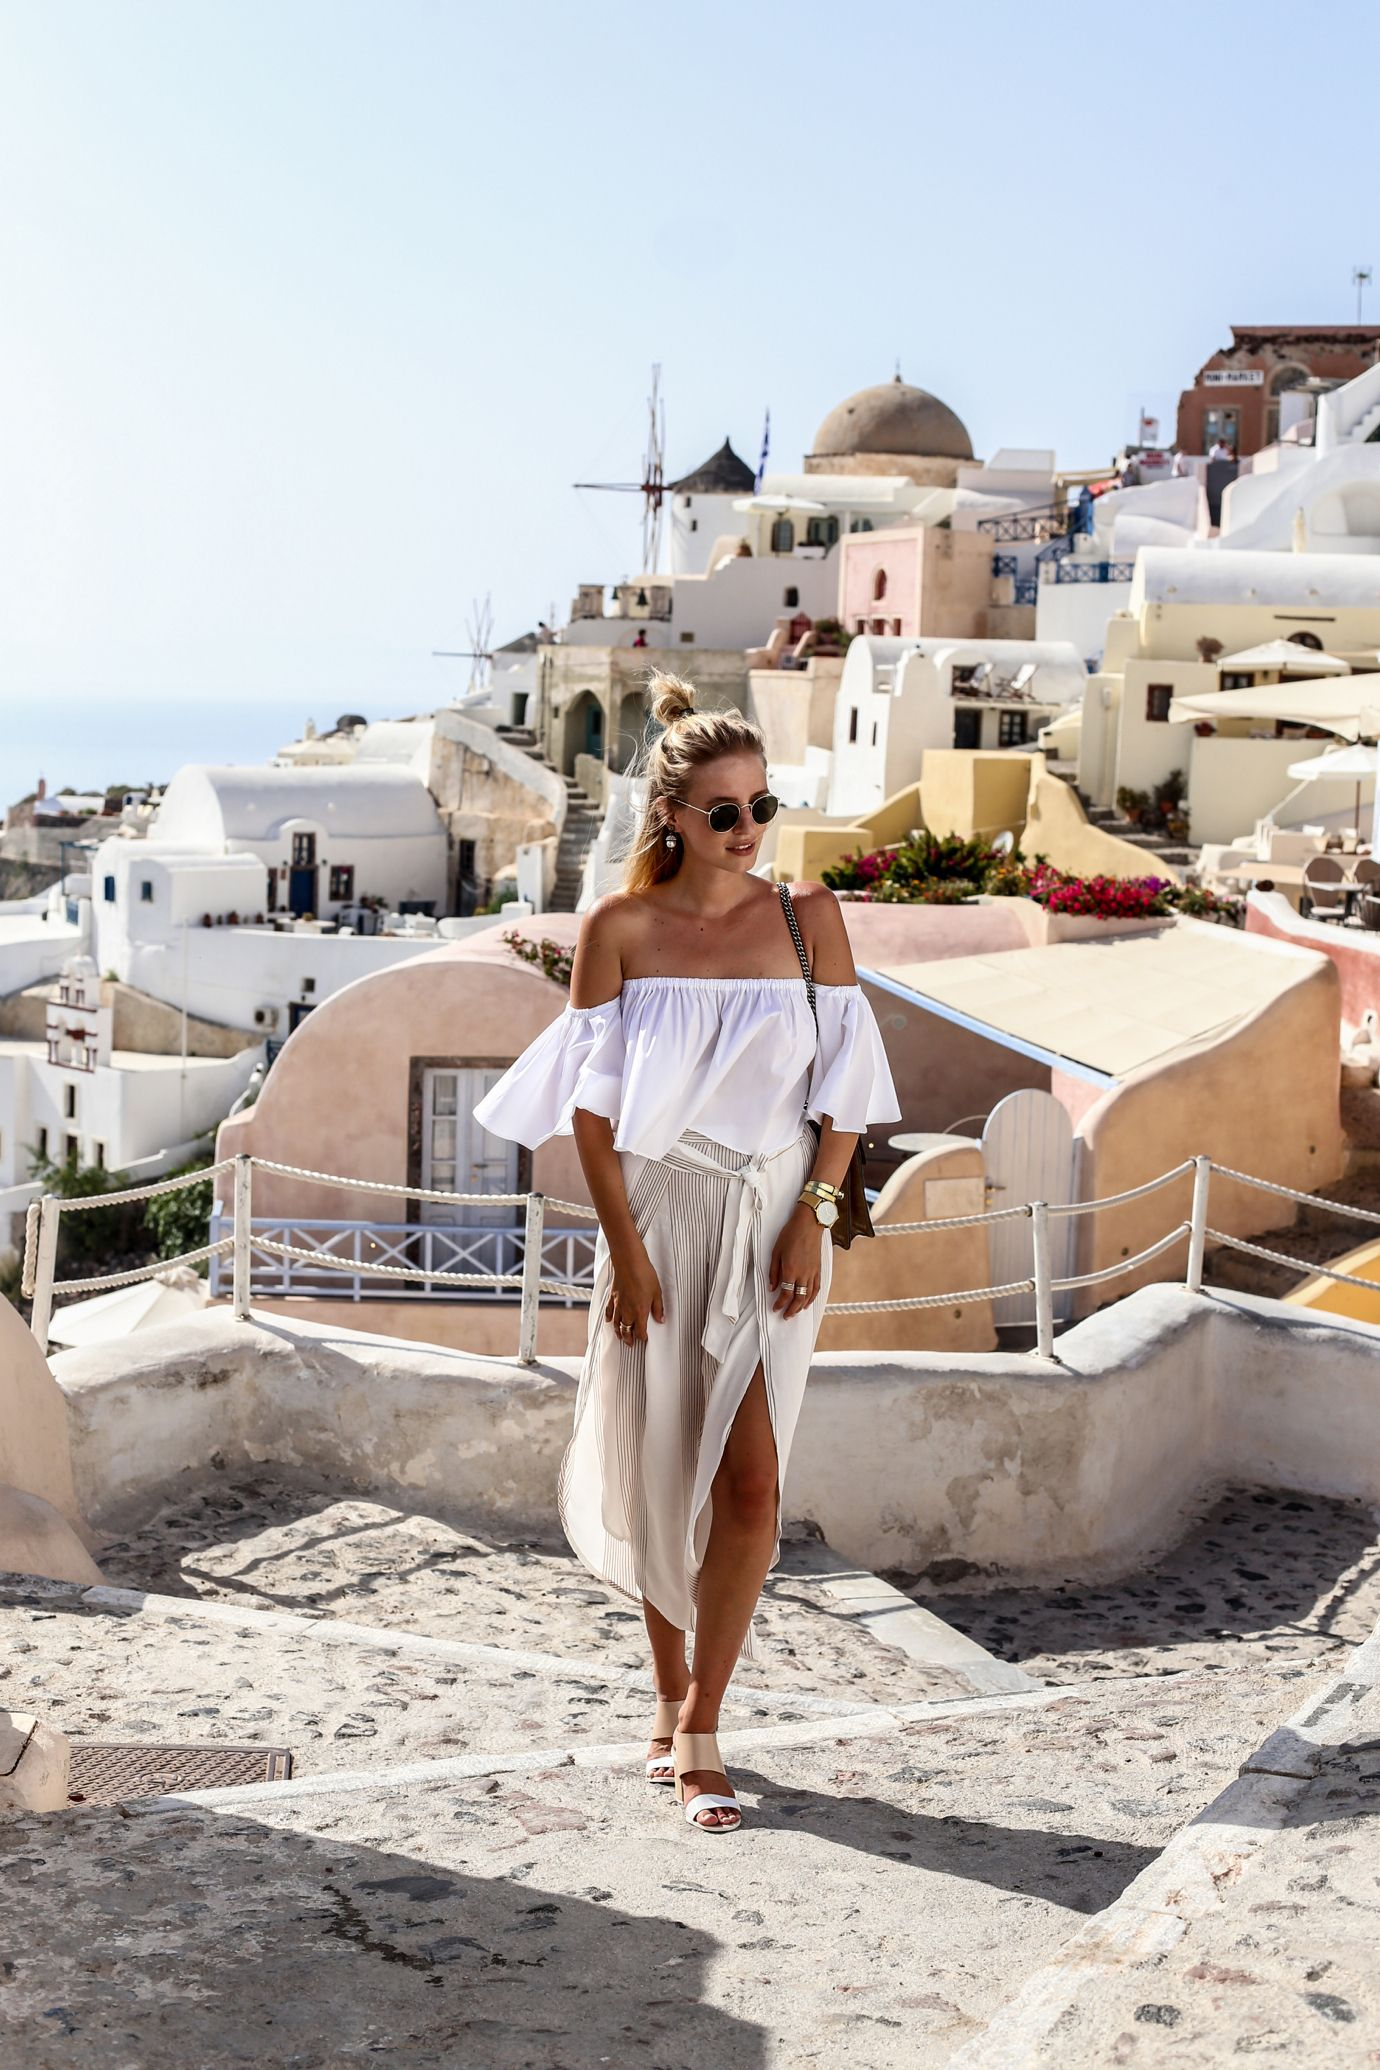 All neutral in Fira, Santorini | Gucci Dionysus bag, off shoulder top, Faithfull pants: http://www.ohhcouture.com/2016/06/nude-gucci-earrings/ | #ohhcouture #leoniehanne